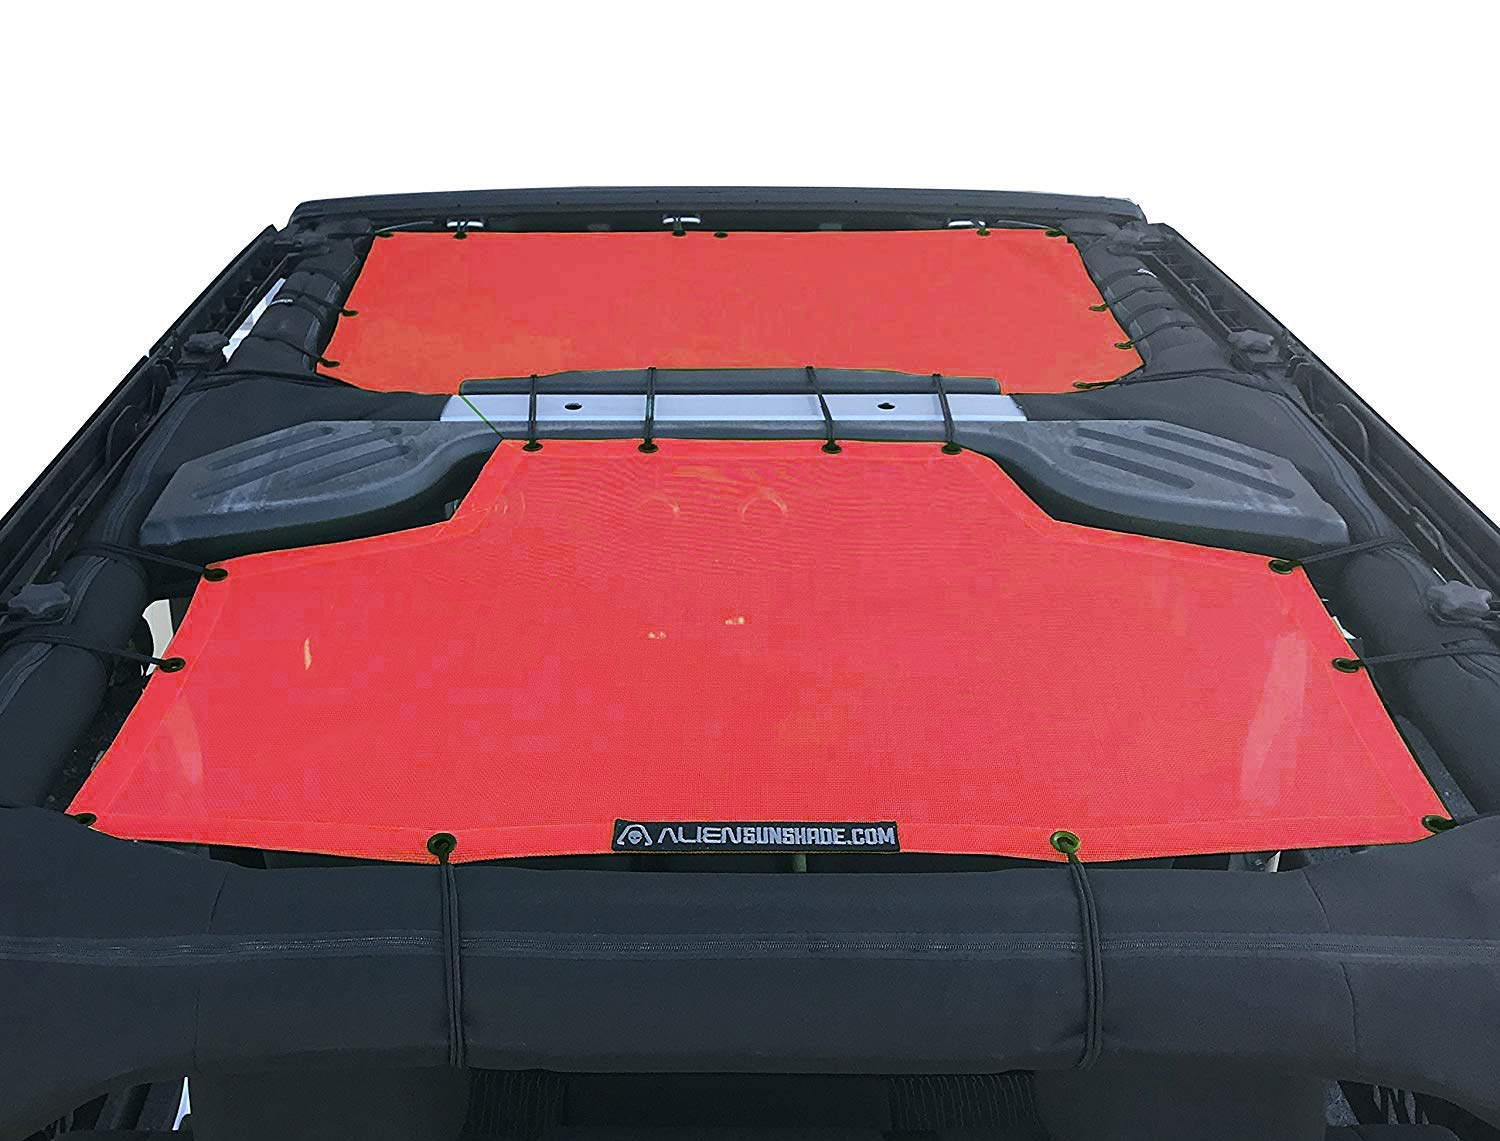 Jeep JKU Sunshade 4-Door JKU Top Orange ALIEN SUNSHADE Jeep Wrangler Sunshade 2-Piece Front /& Rear Mesh Jeep Tops 2007-2018